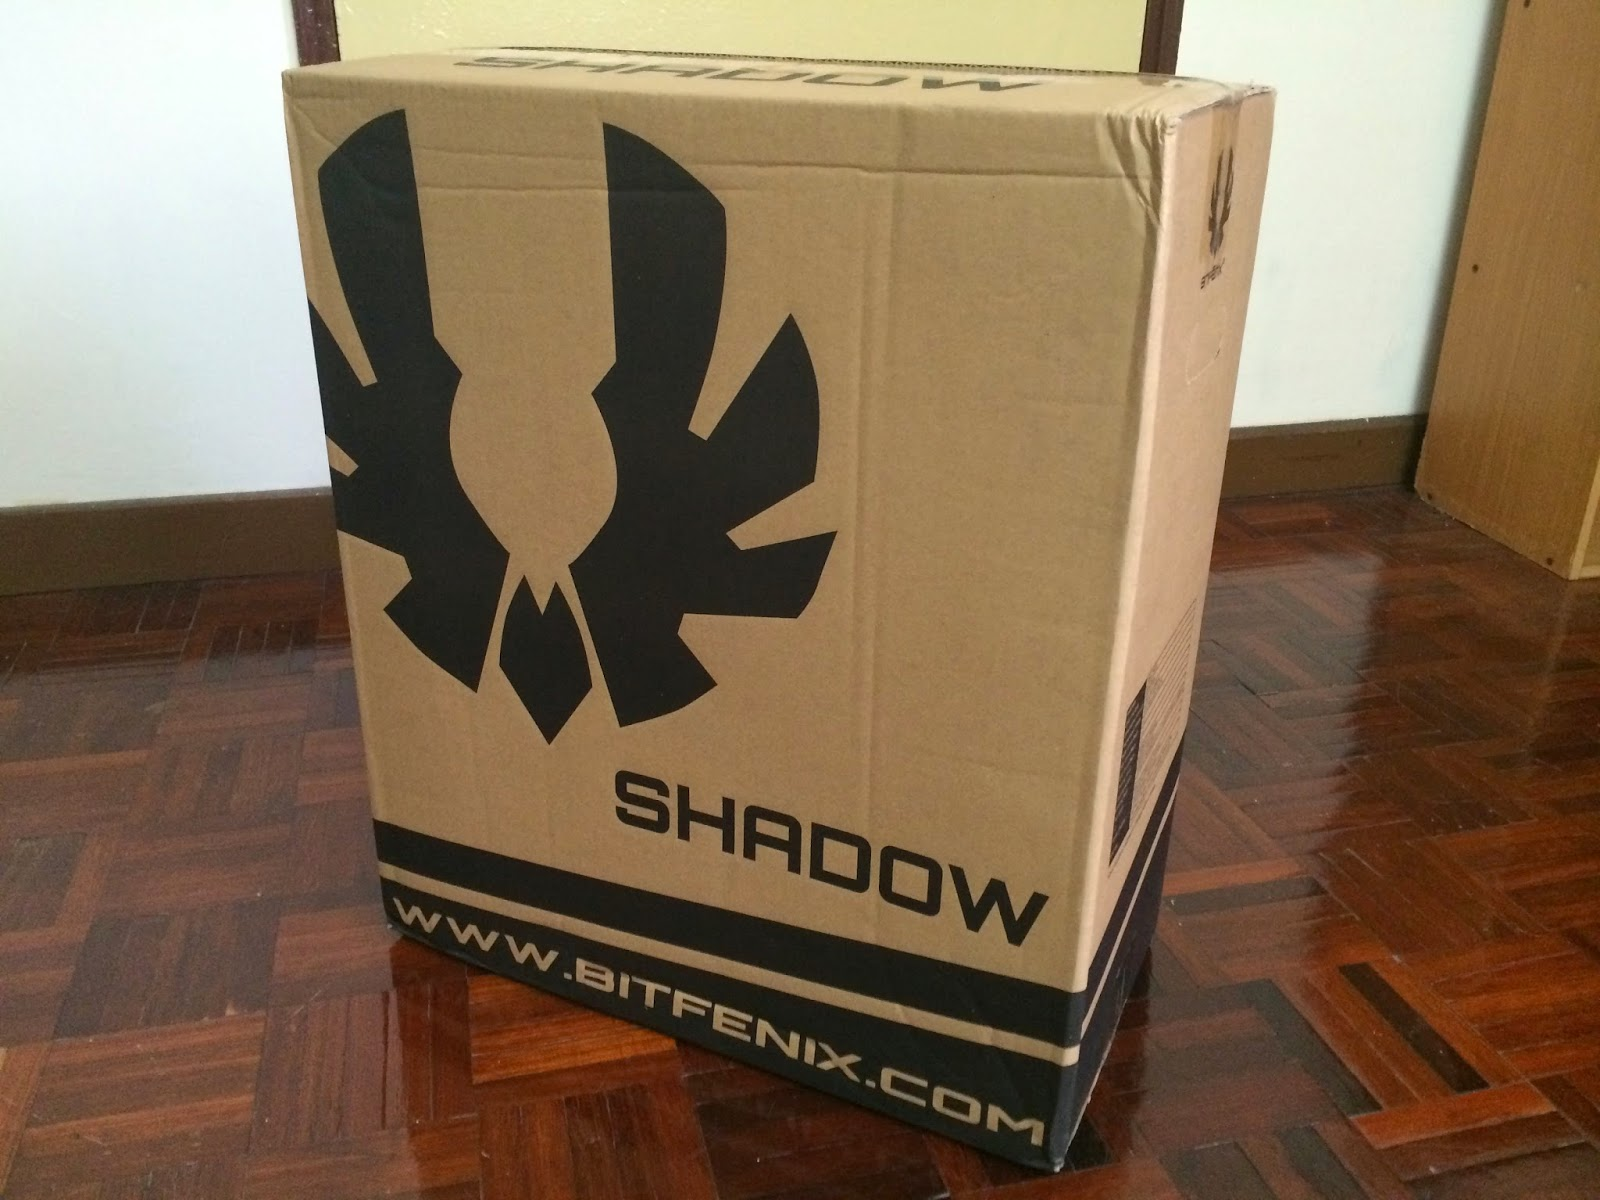 Unboxing & Review: Bitfenix Shadow 86